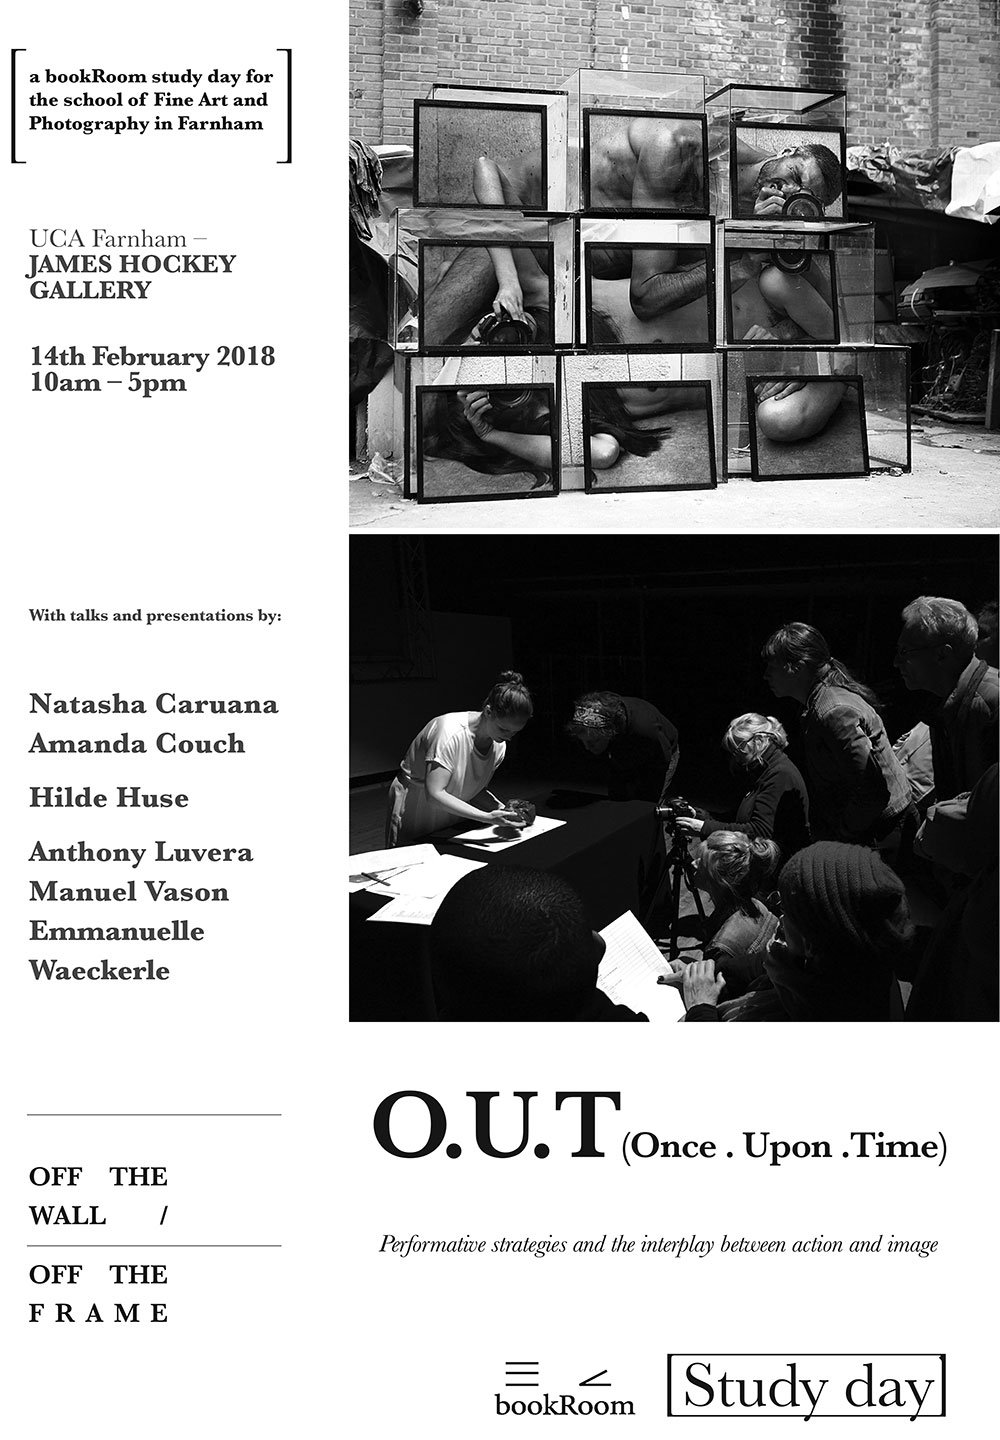 OUT-bookRoom-StudyDay-14th-feb-2